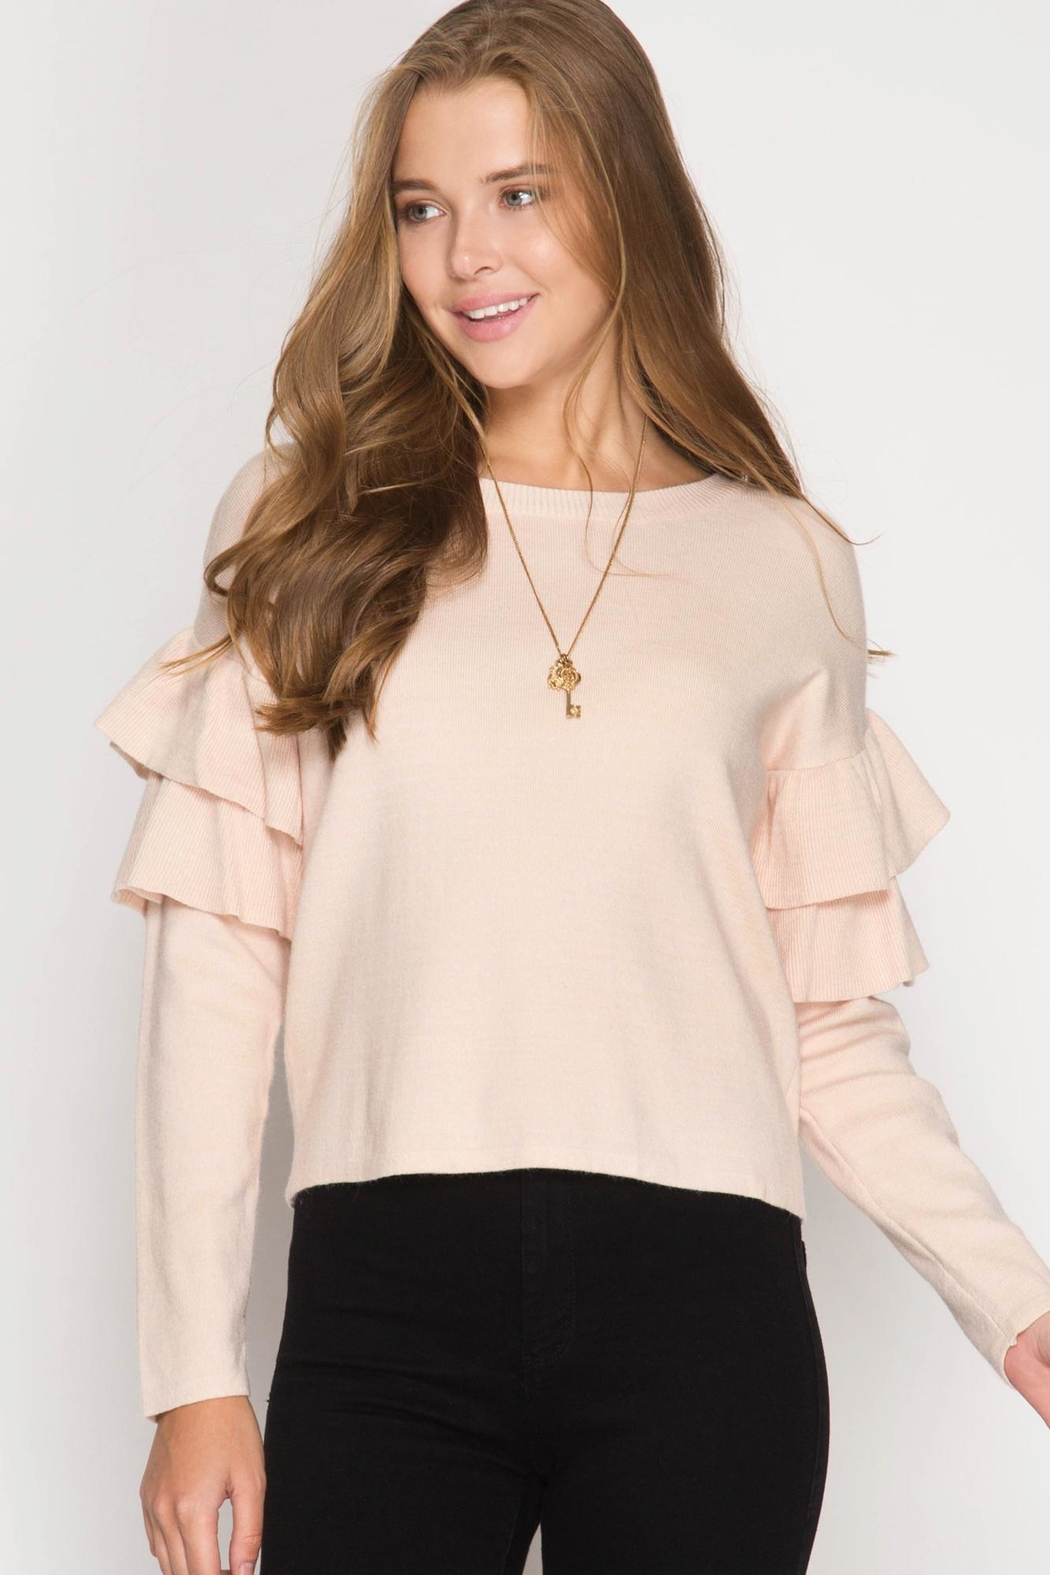 She + Sky Ruffled Sweater Top - Main Image